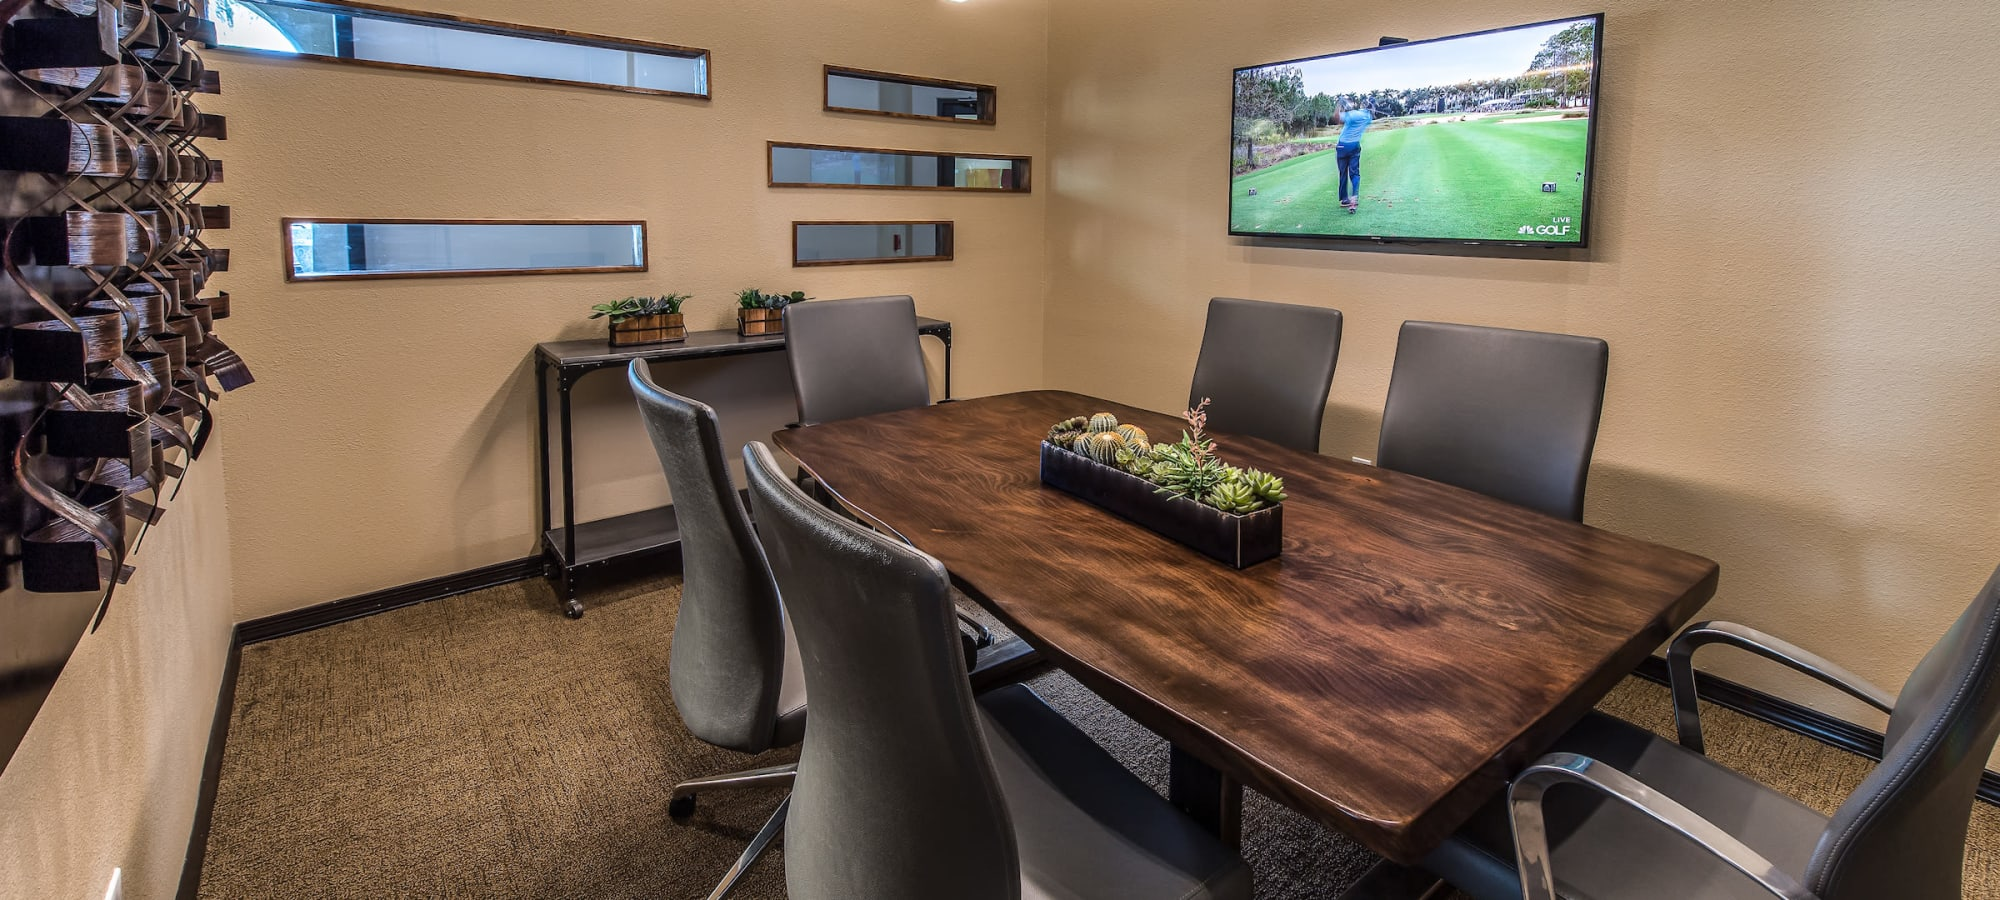 Meeting room for resident use in the clubhouse at Stone Oaks in Chandler, Arizona